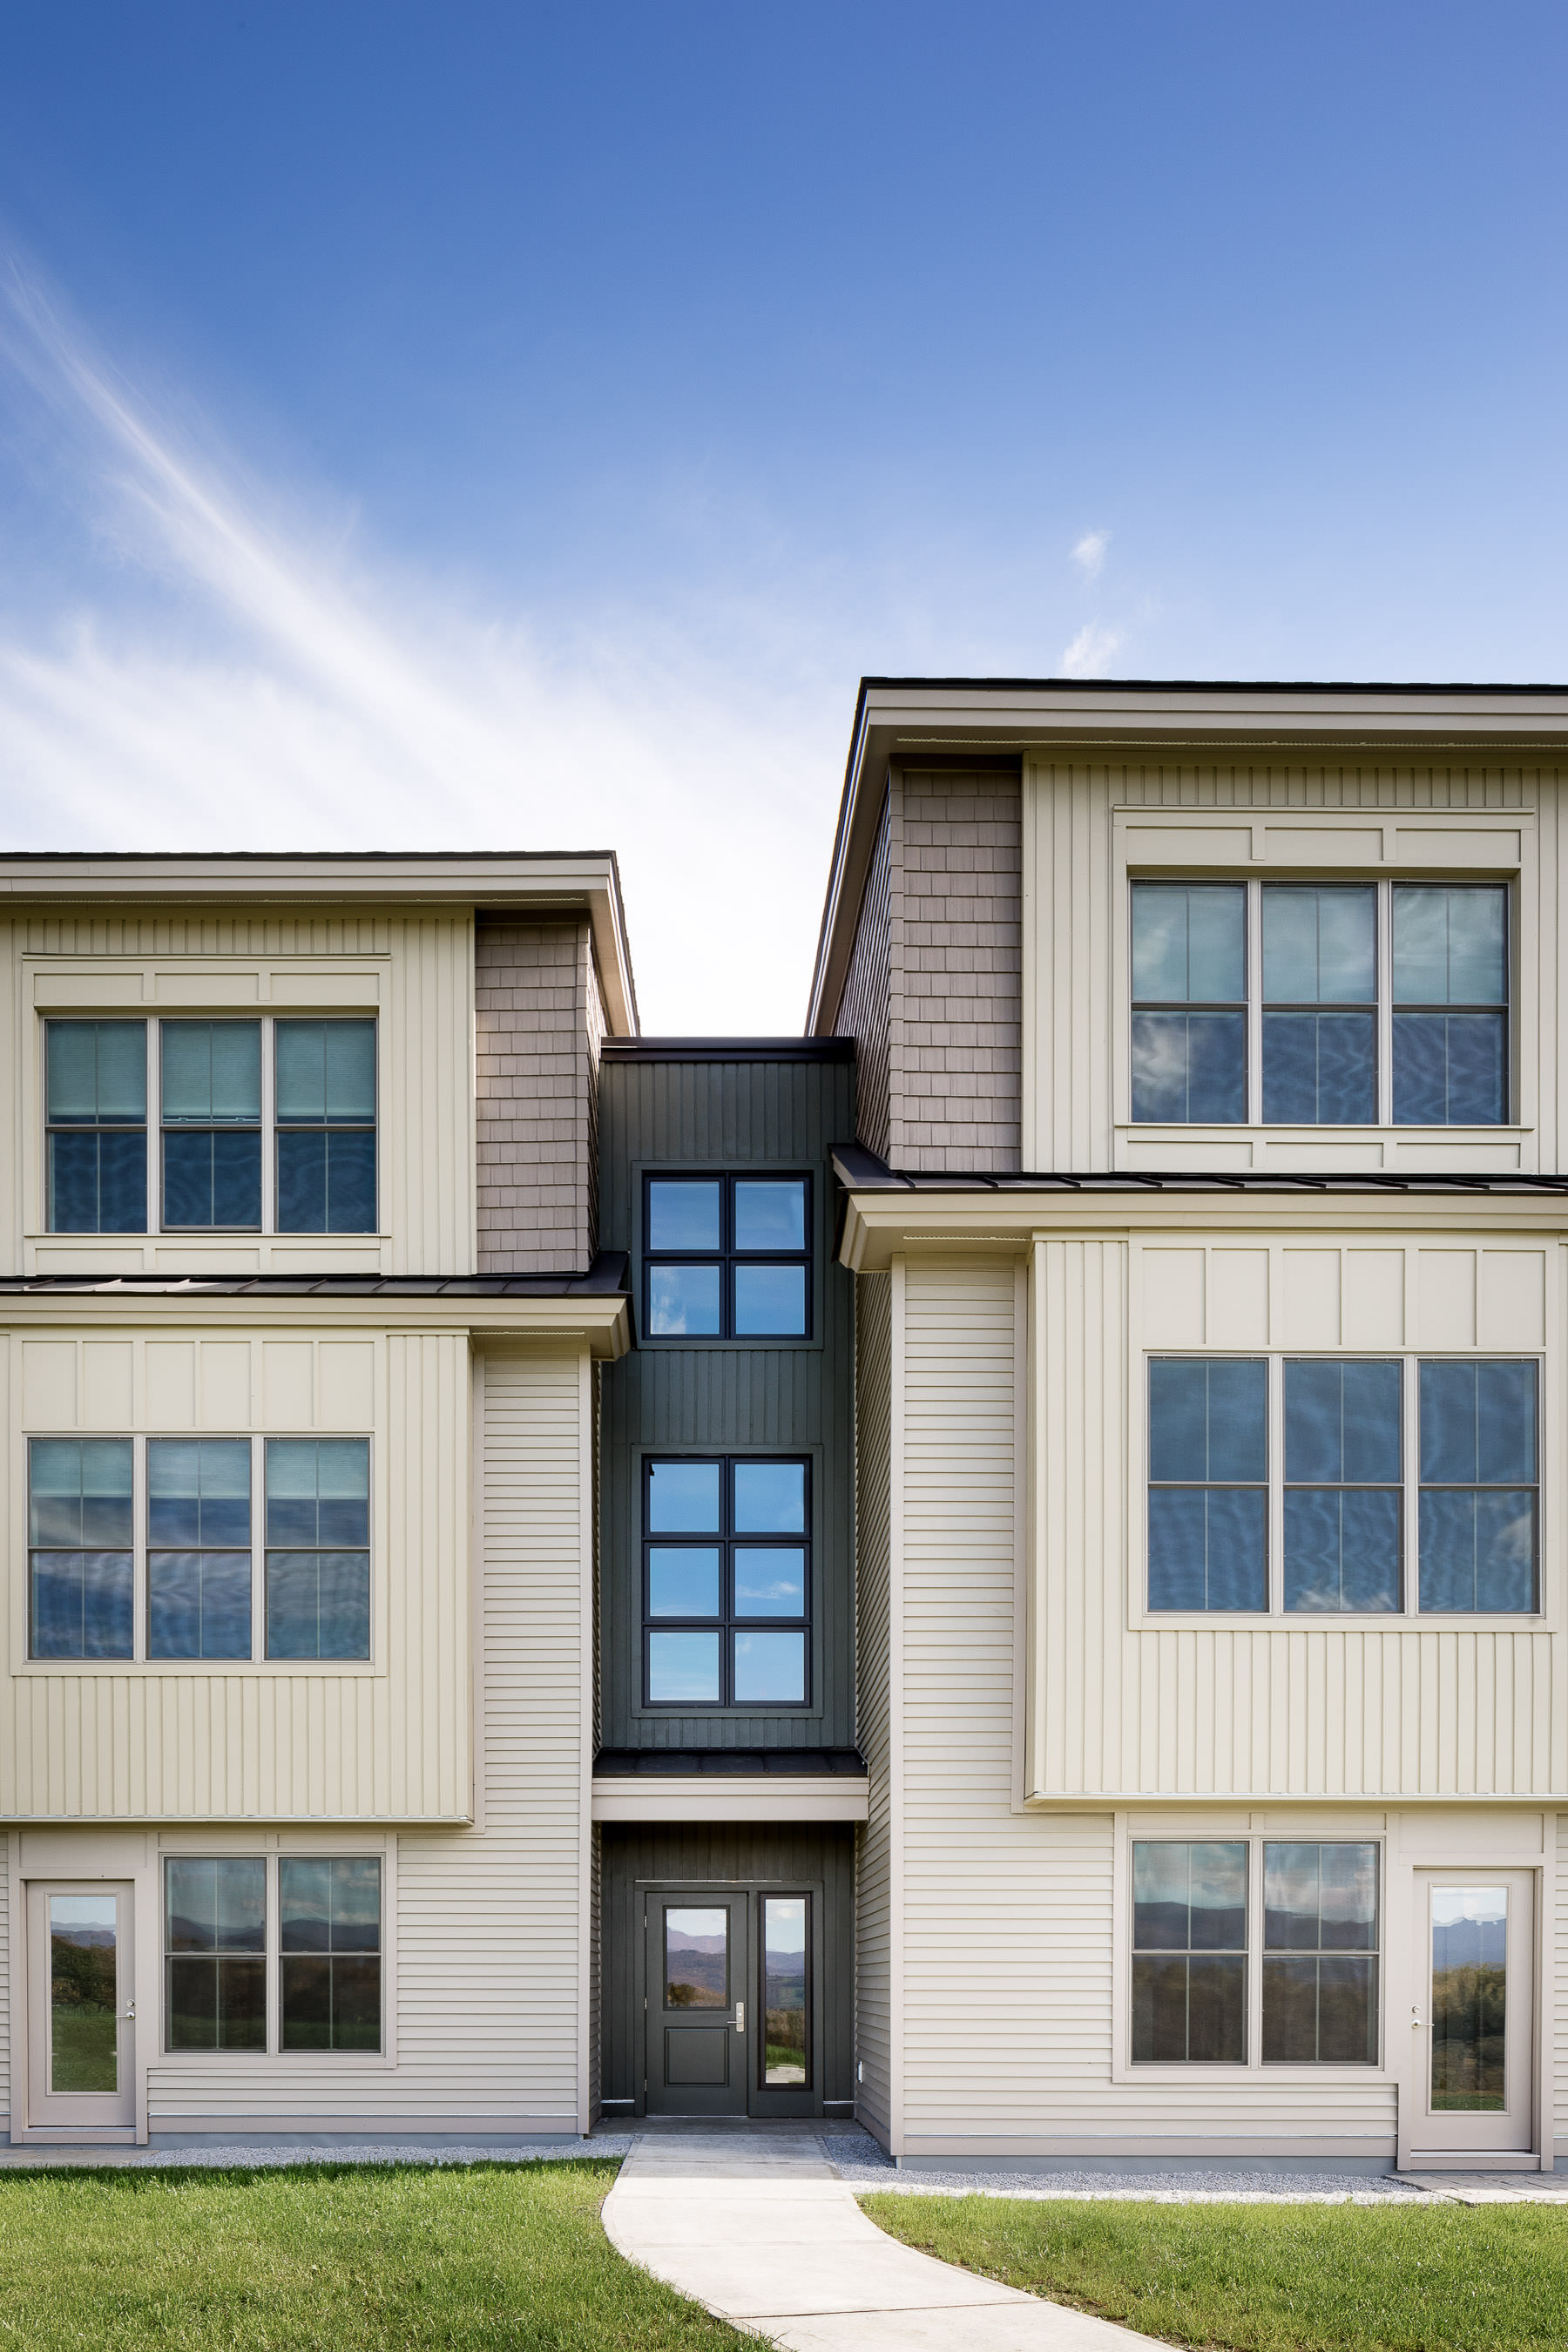 A straight facade view of the western exterior of the Strode Independent Living Facility in Randolph by Vermont commercial photographer Stina Booth